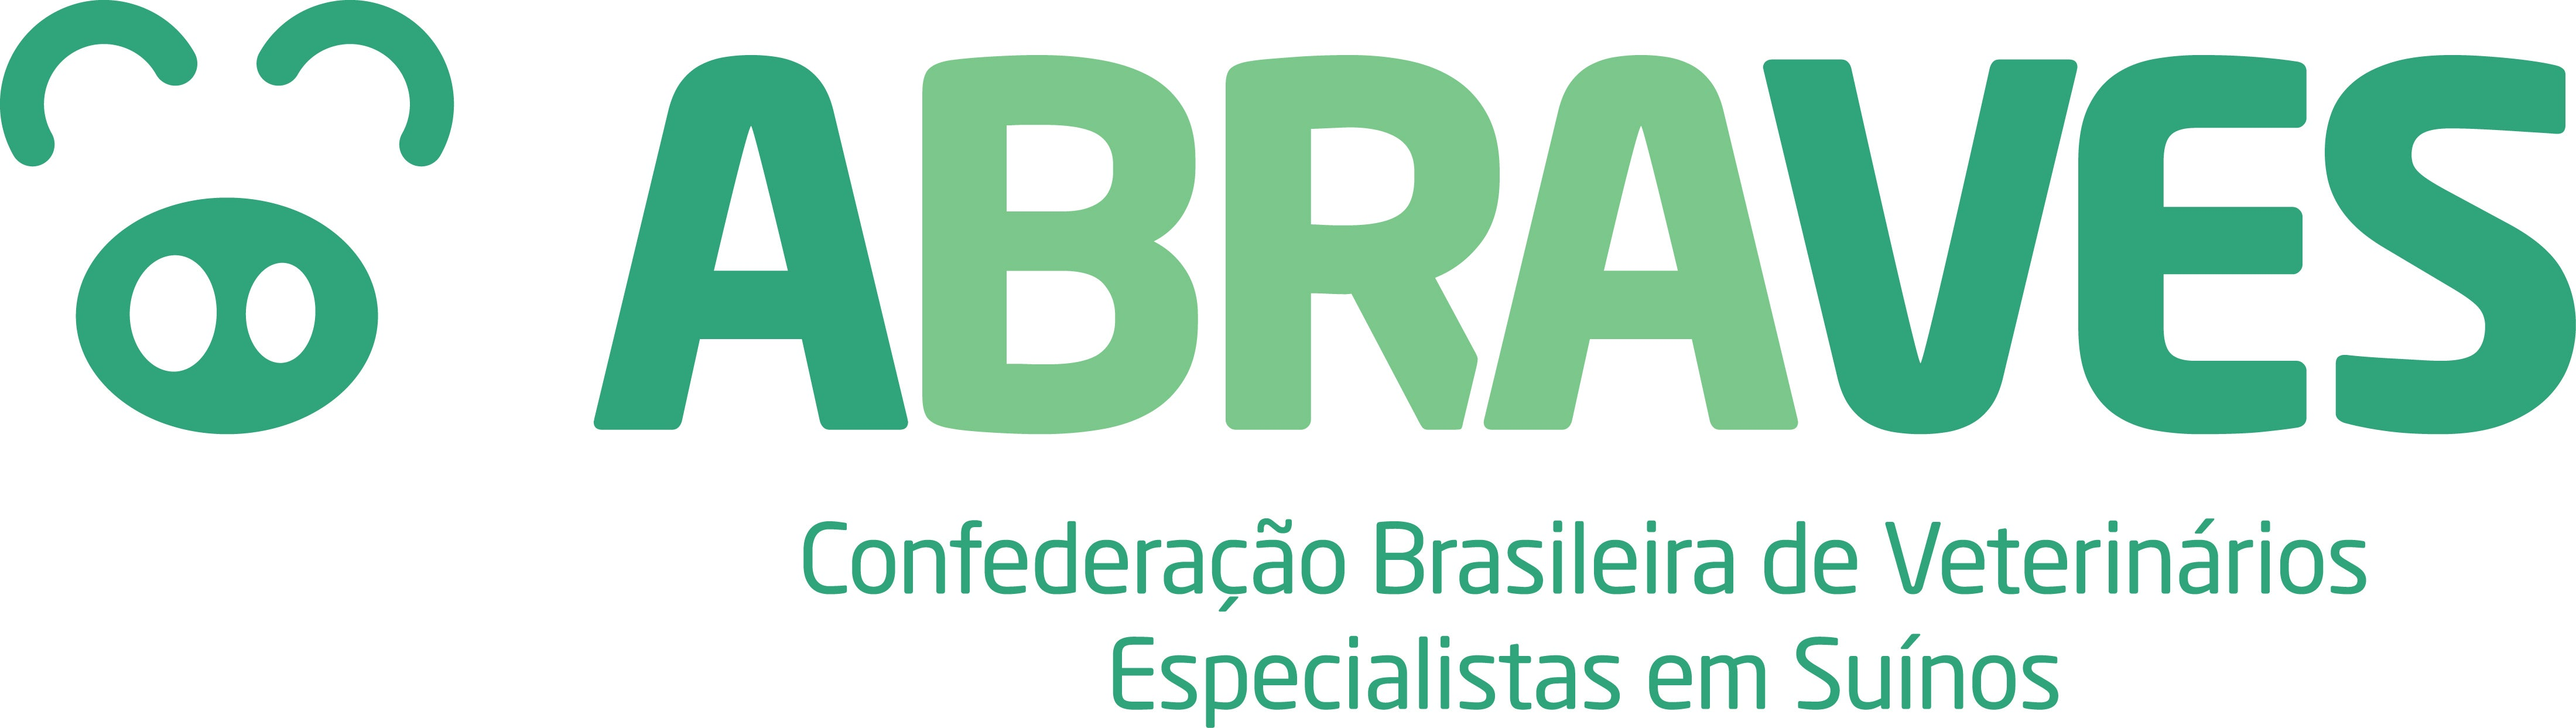 The Brazilian Association of Swine Veterinary Specialists (ABRAVES) logo